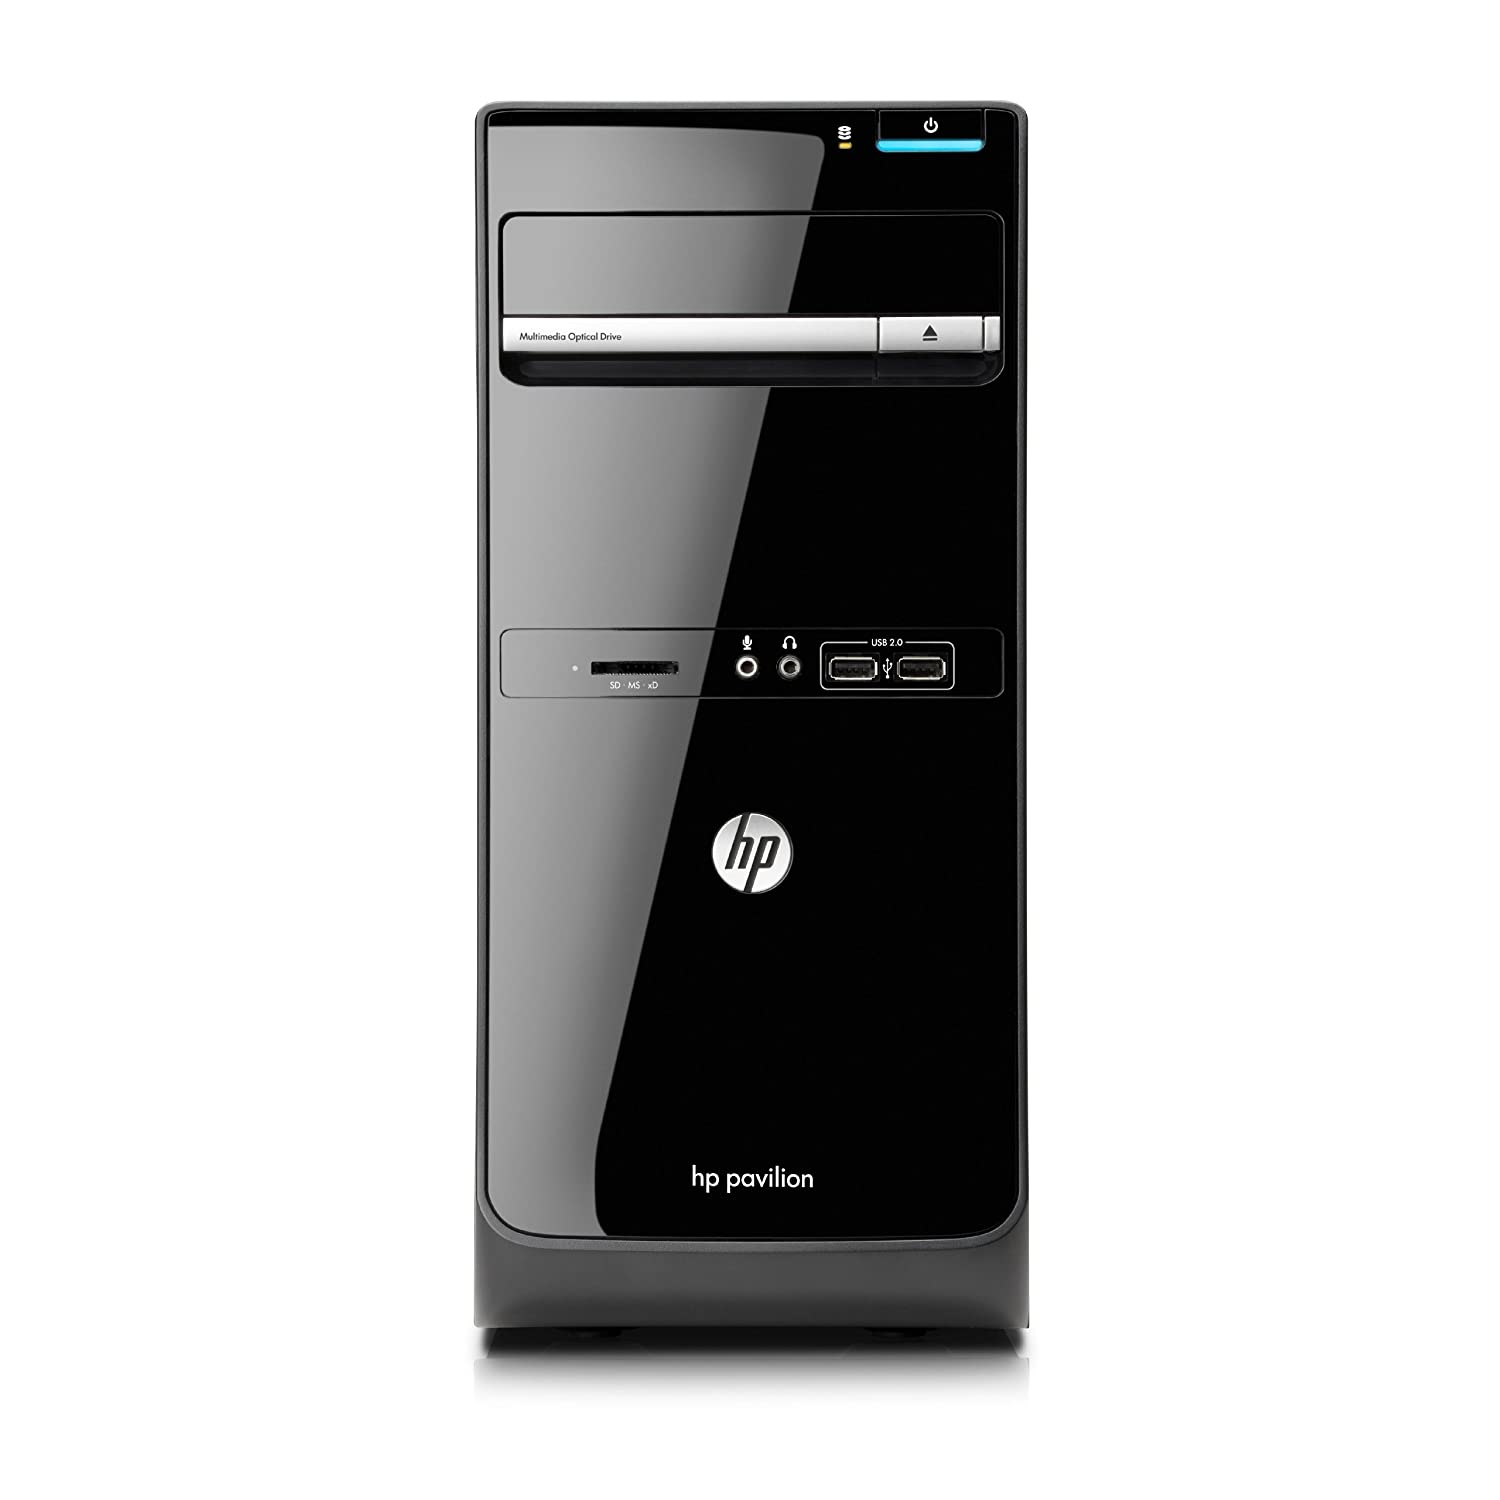 HP Pavilion p6-2350 Desktop (Black)